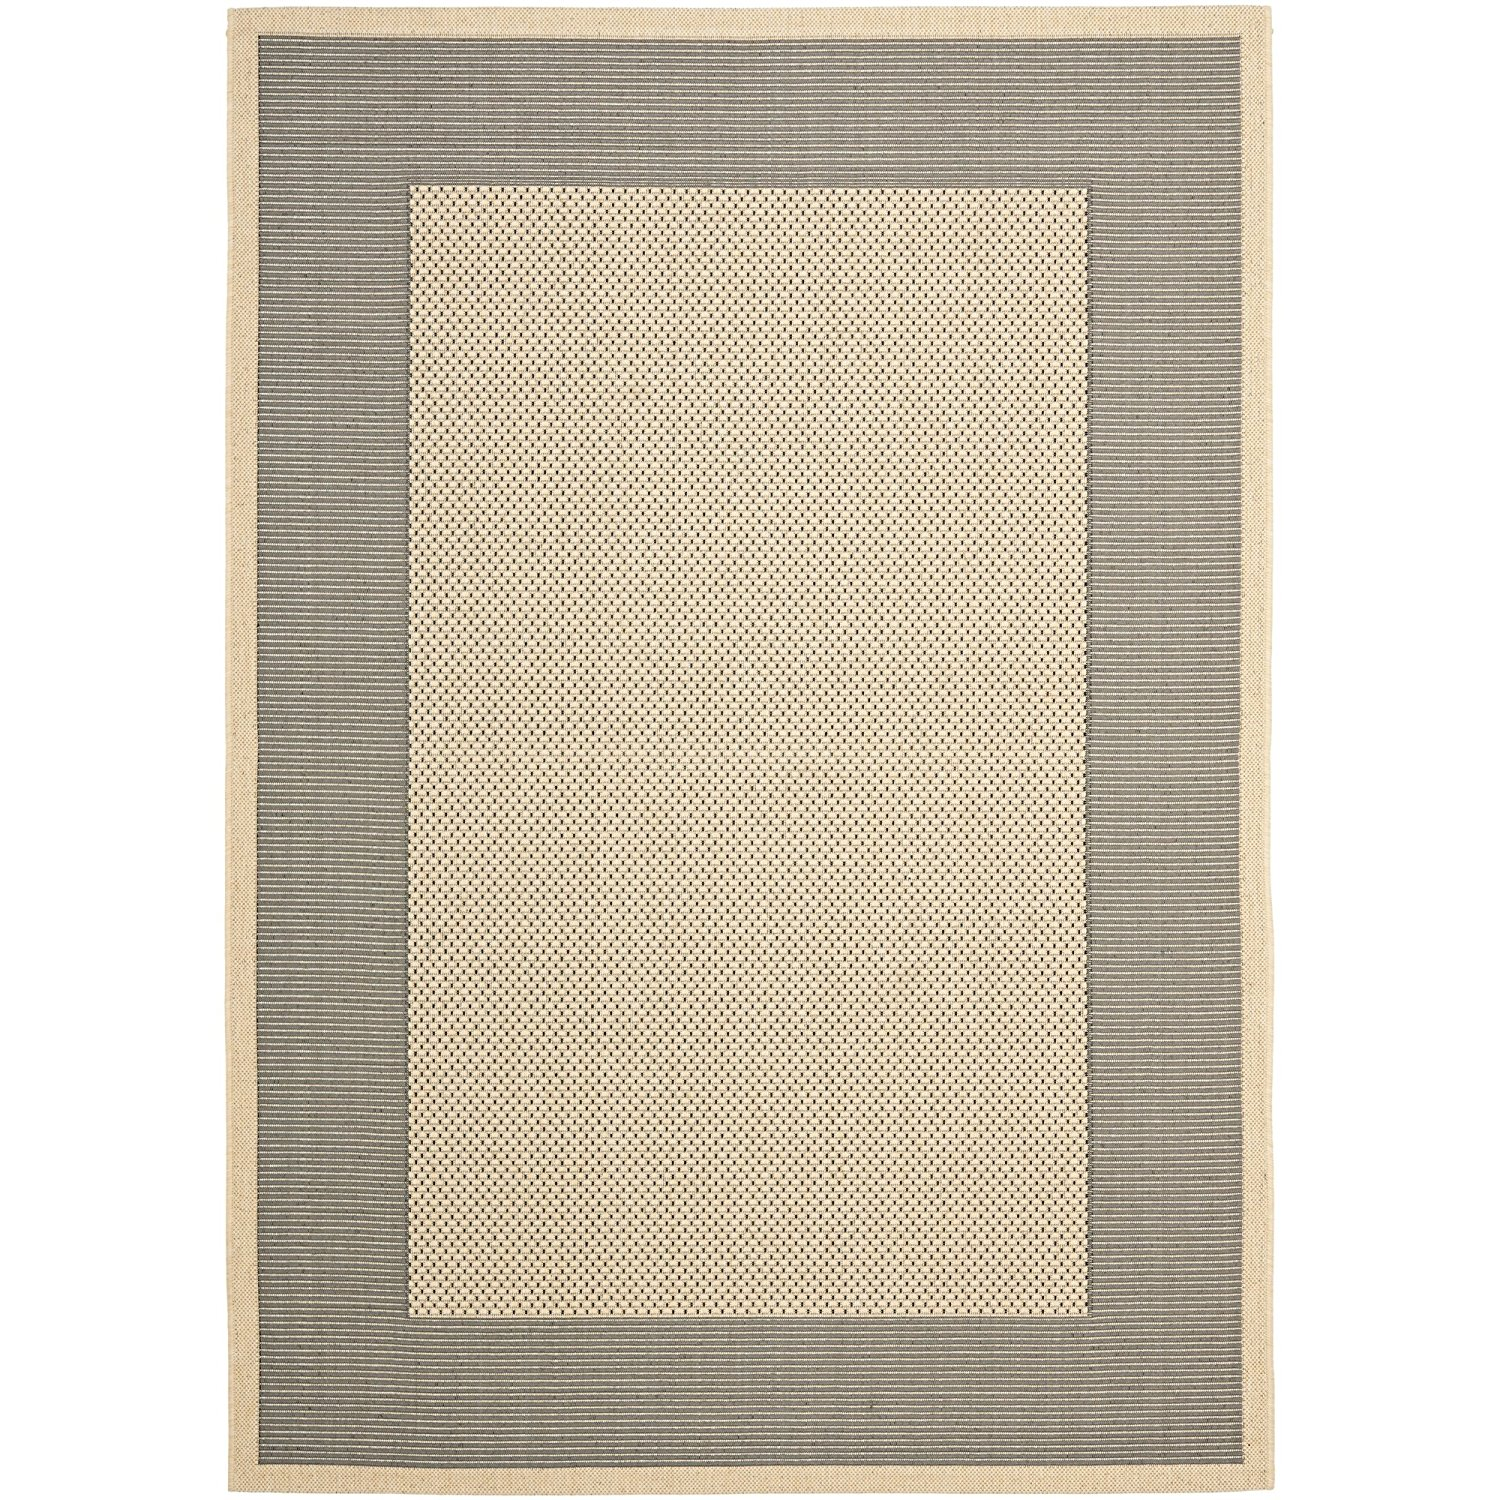 """Safavieh Courtyard Collection CY7987-65A5 Grey and Cream Indoor/ Outdoor Area Rug (5'3"""" x 7'7"""")"""